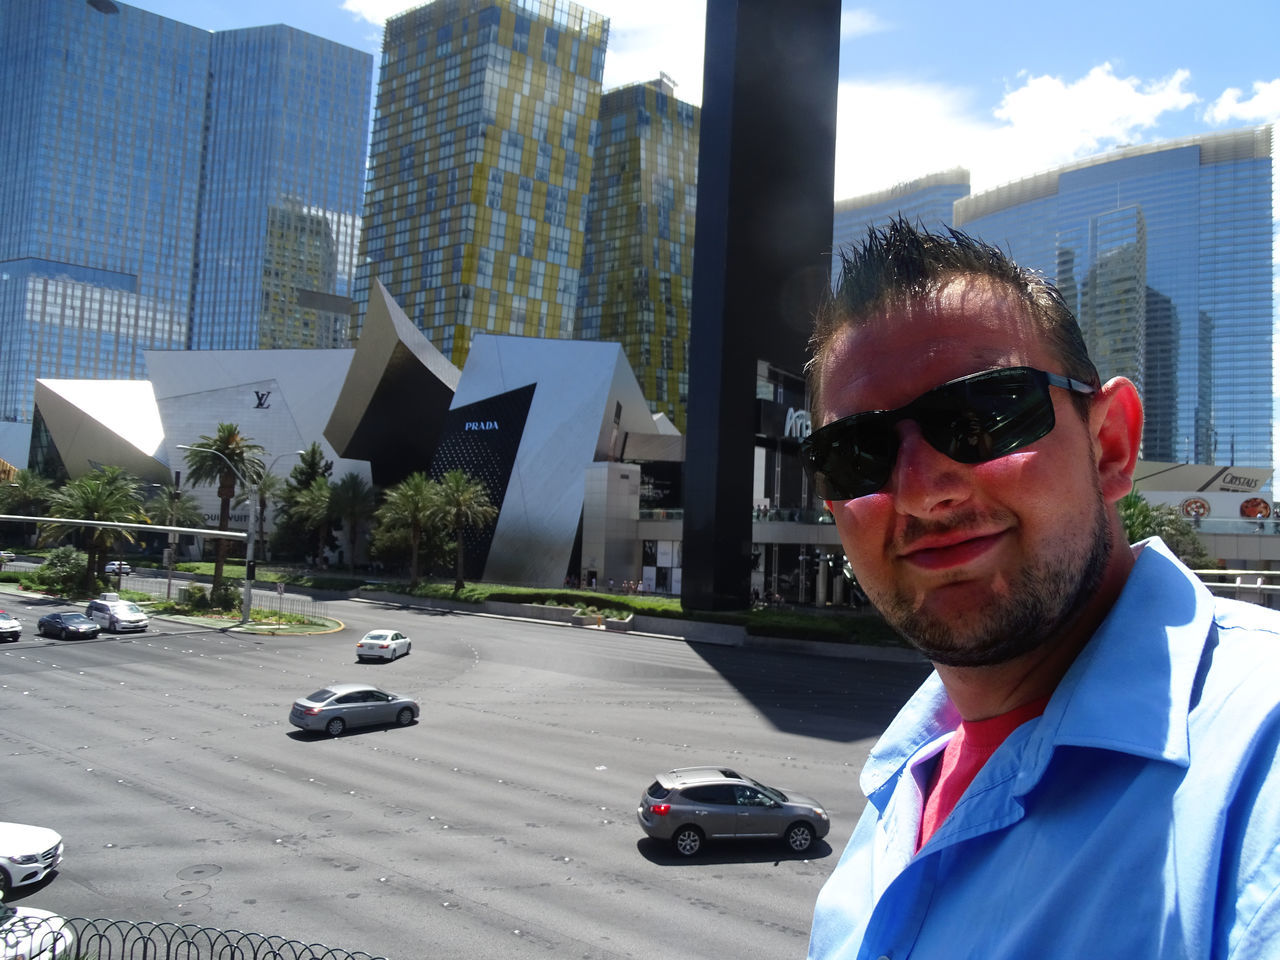 real people, architecture, built structure, sunglasses, building exterior, one person, looking at camera, young adult, day, portrait, land vehicle, outdoors, young men, lifestyles, city